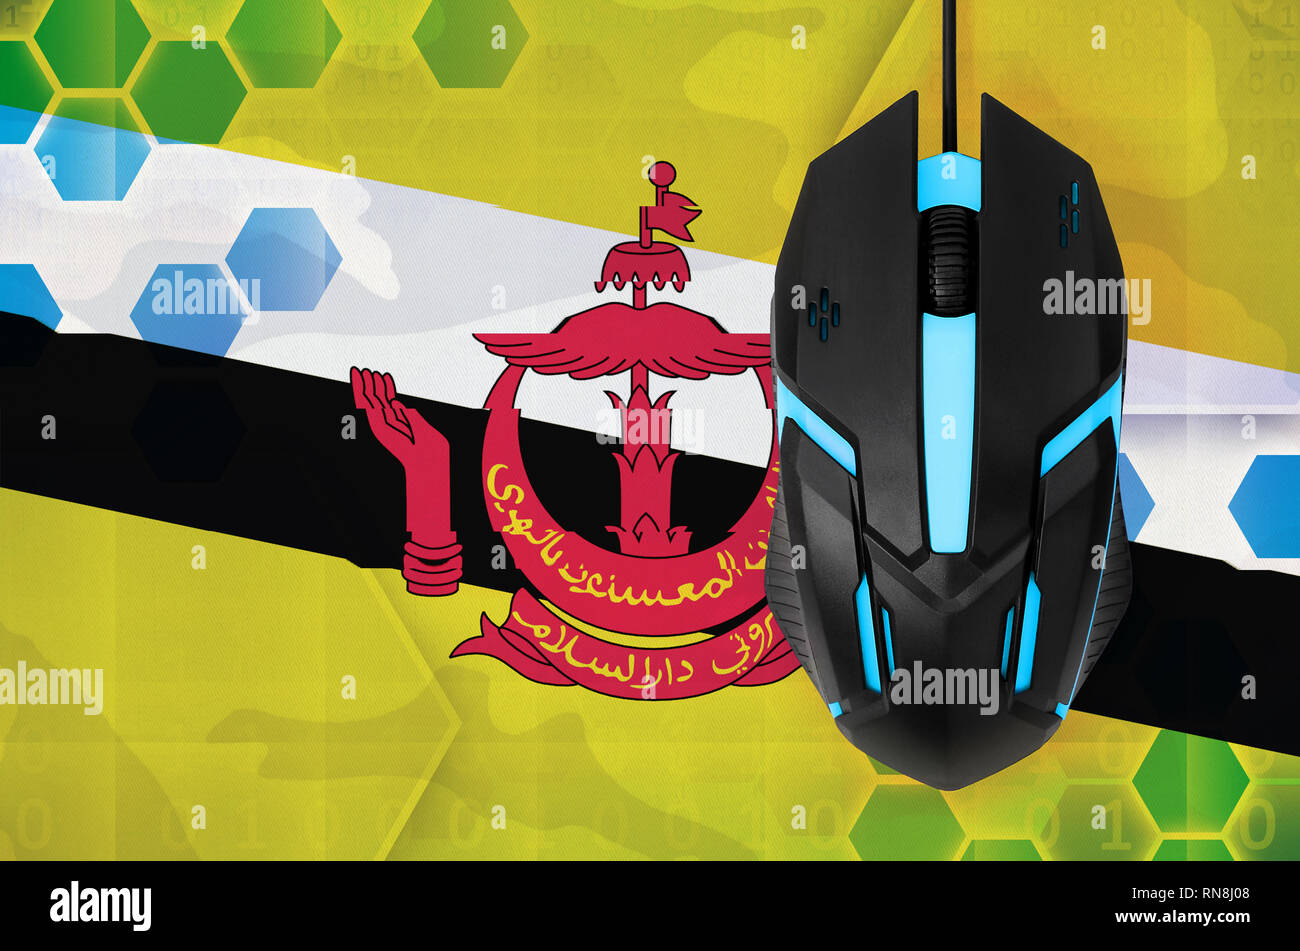 Brunei Darussalam flag  and modern backlit computer mouse. Concept of country representing e-sports team - Stock Image